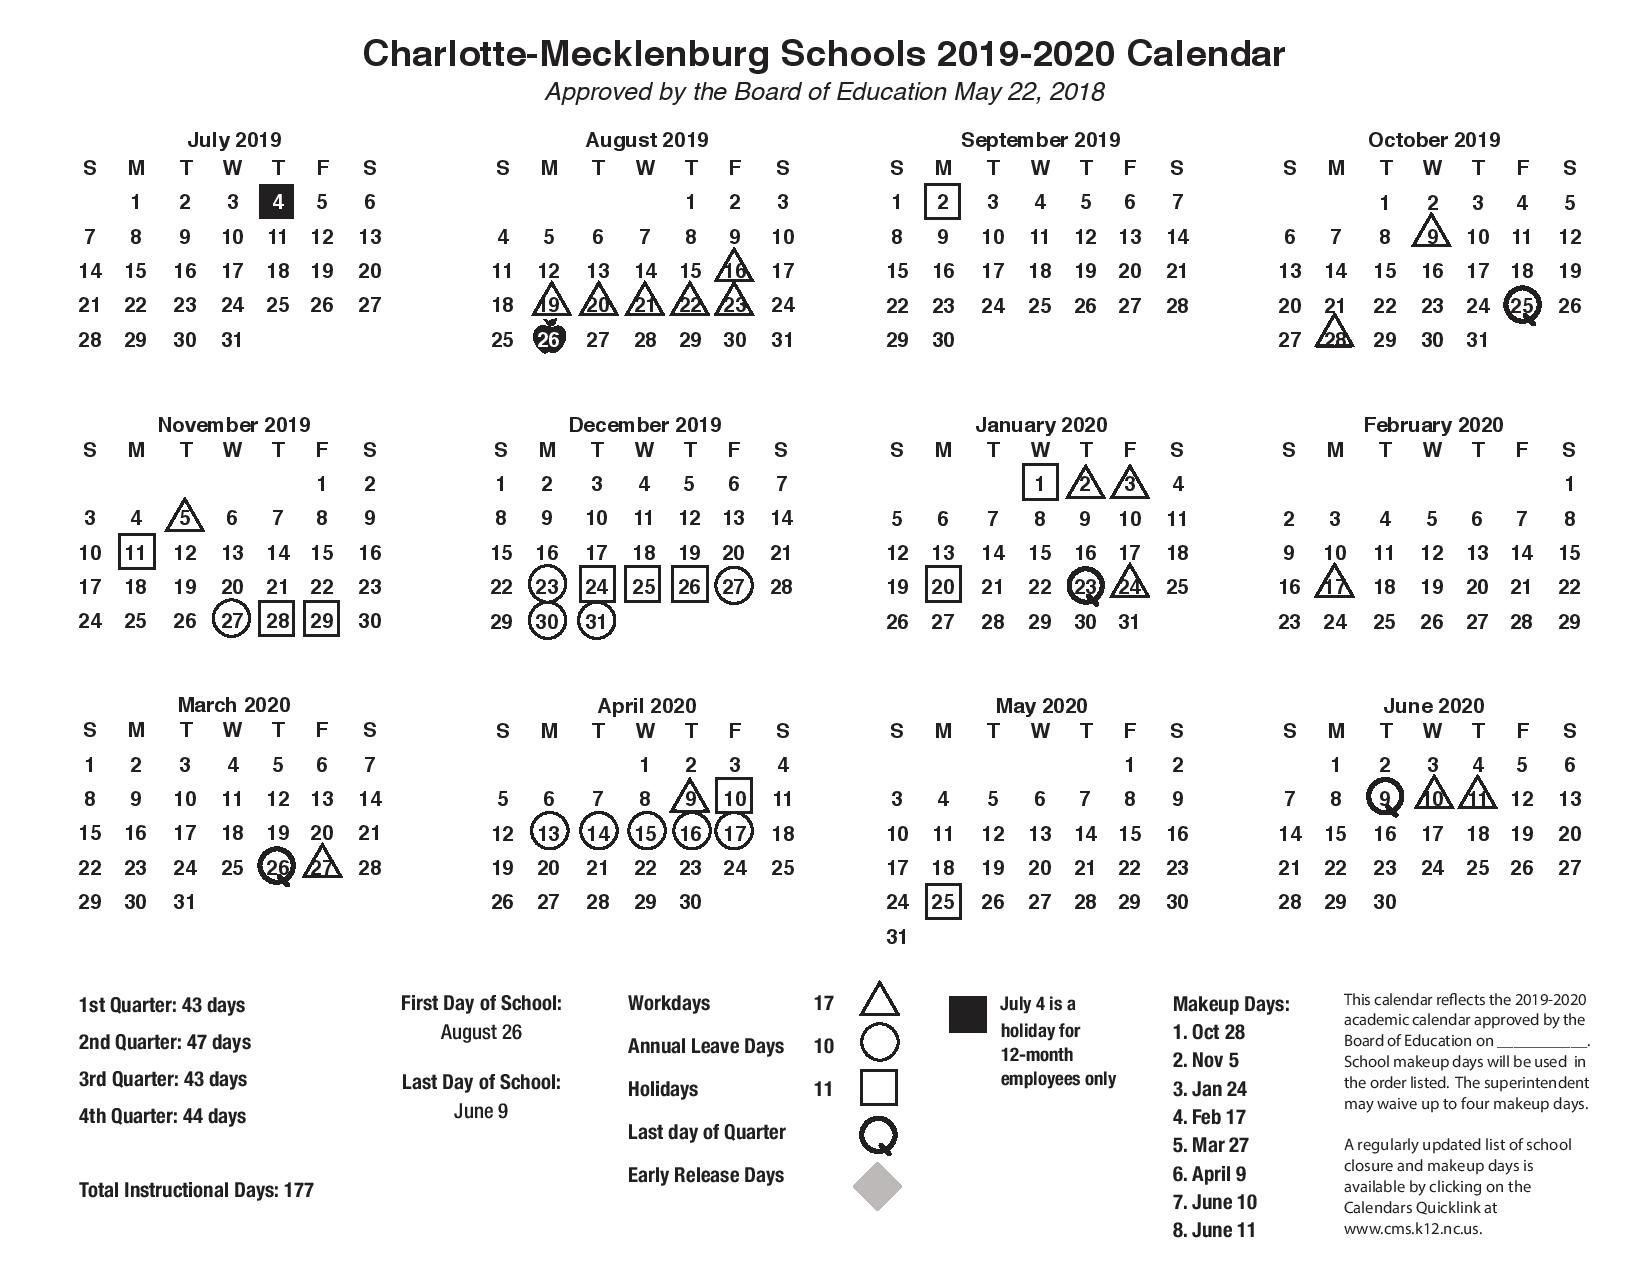 Cms School Calendar With Holidays Images Pictures Https Www Youcalendars Com Cms School Calendar Html School Calendar Academic Calendar Holiday Images